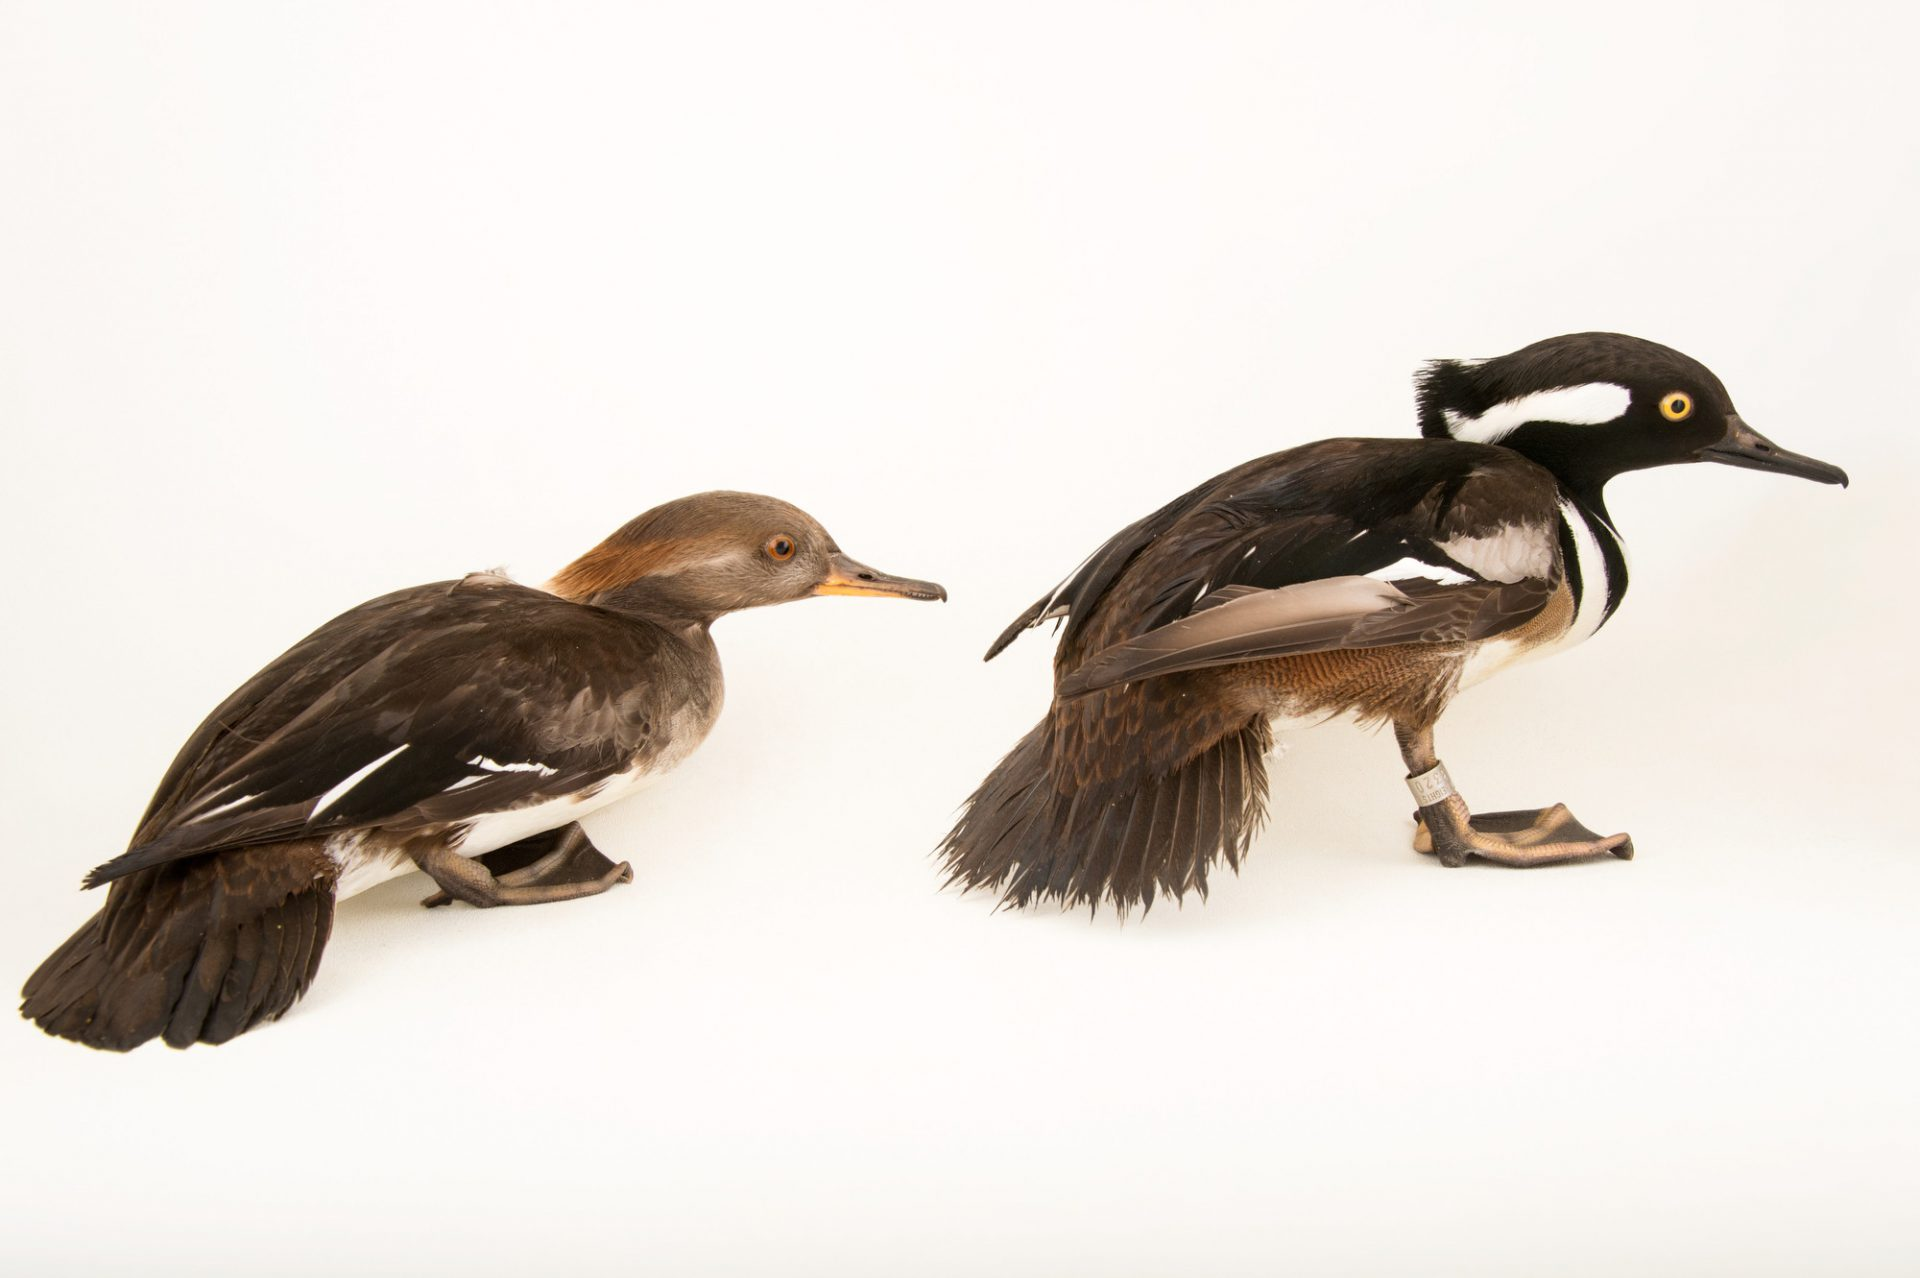 Picture of a hooded mergansers (Mergus cucullatus) at Sylvan Heights Bird Park.